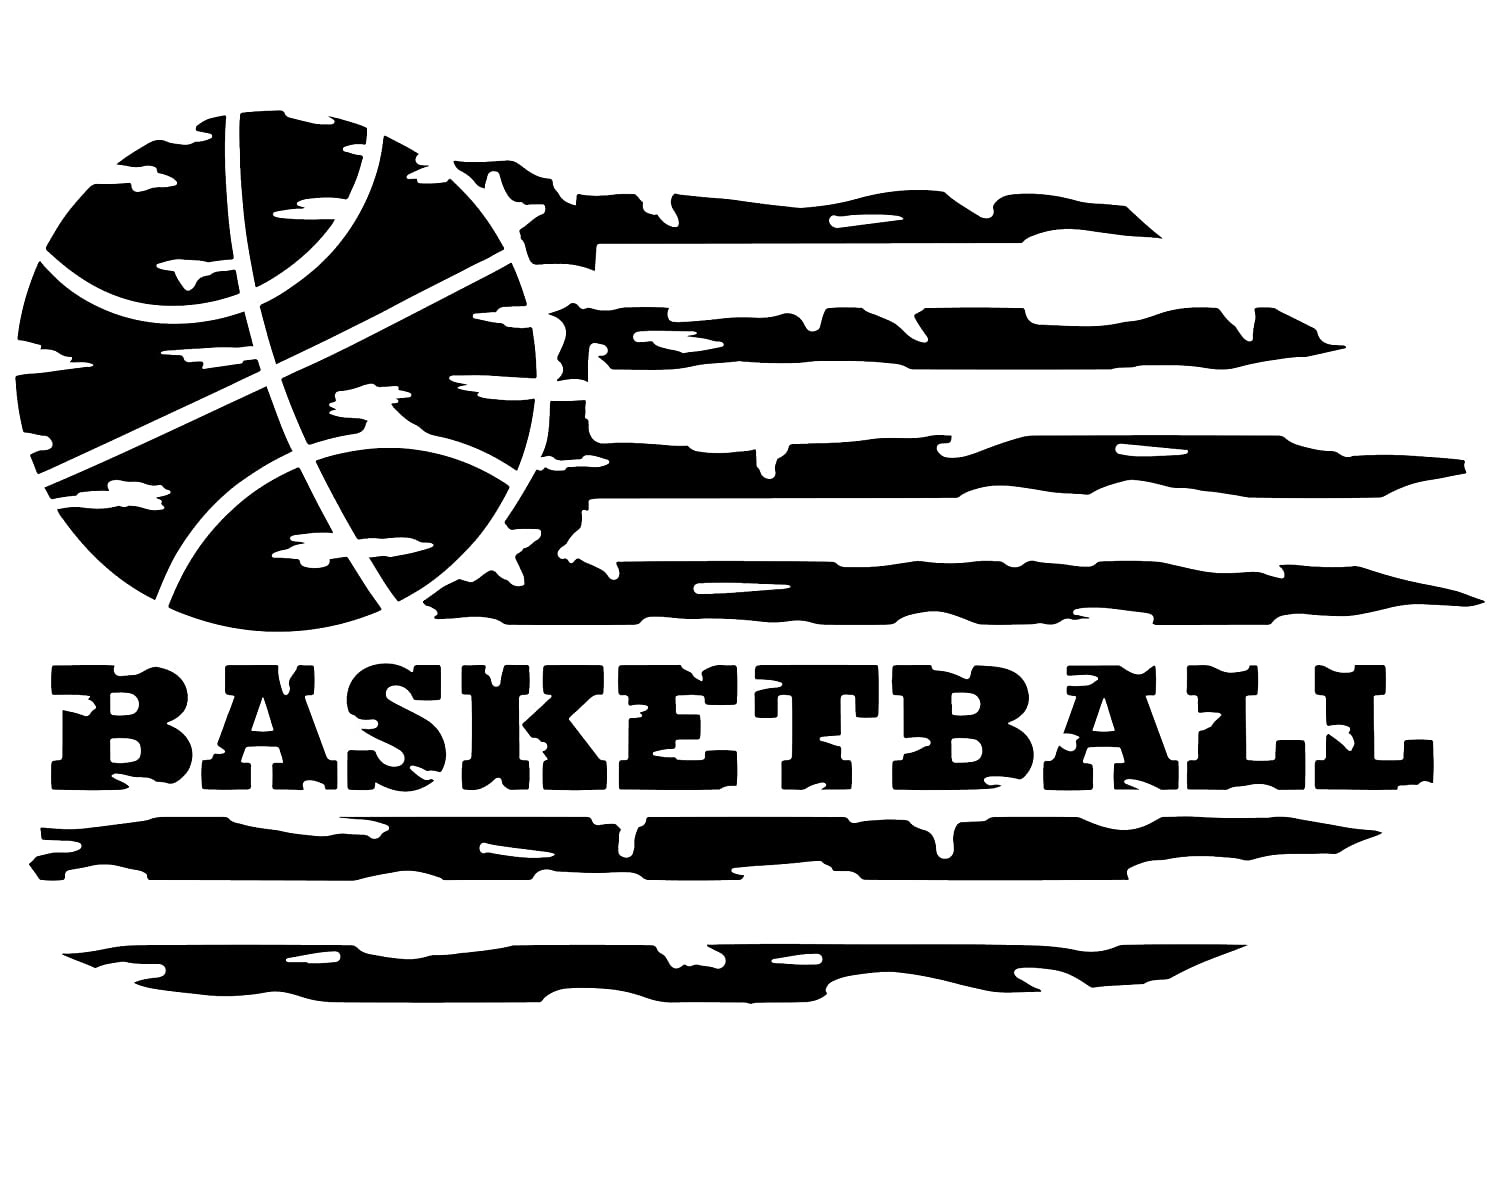 Custom Distressed Flag Basketball Vinyl Decal Laptops Personalized B-ball Coach Gift Car Windows Grunge Hoops Bumper Sticker for Tumblers